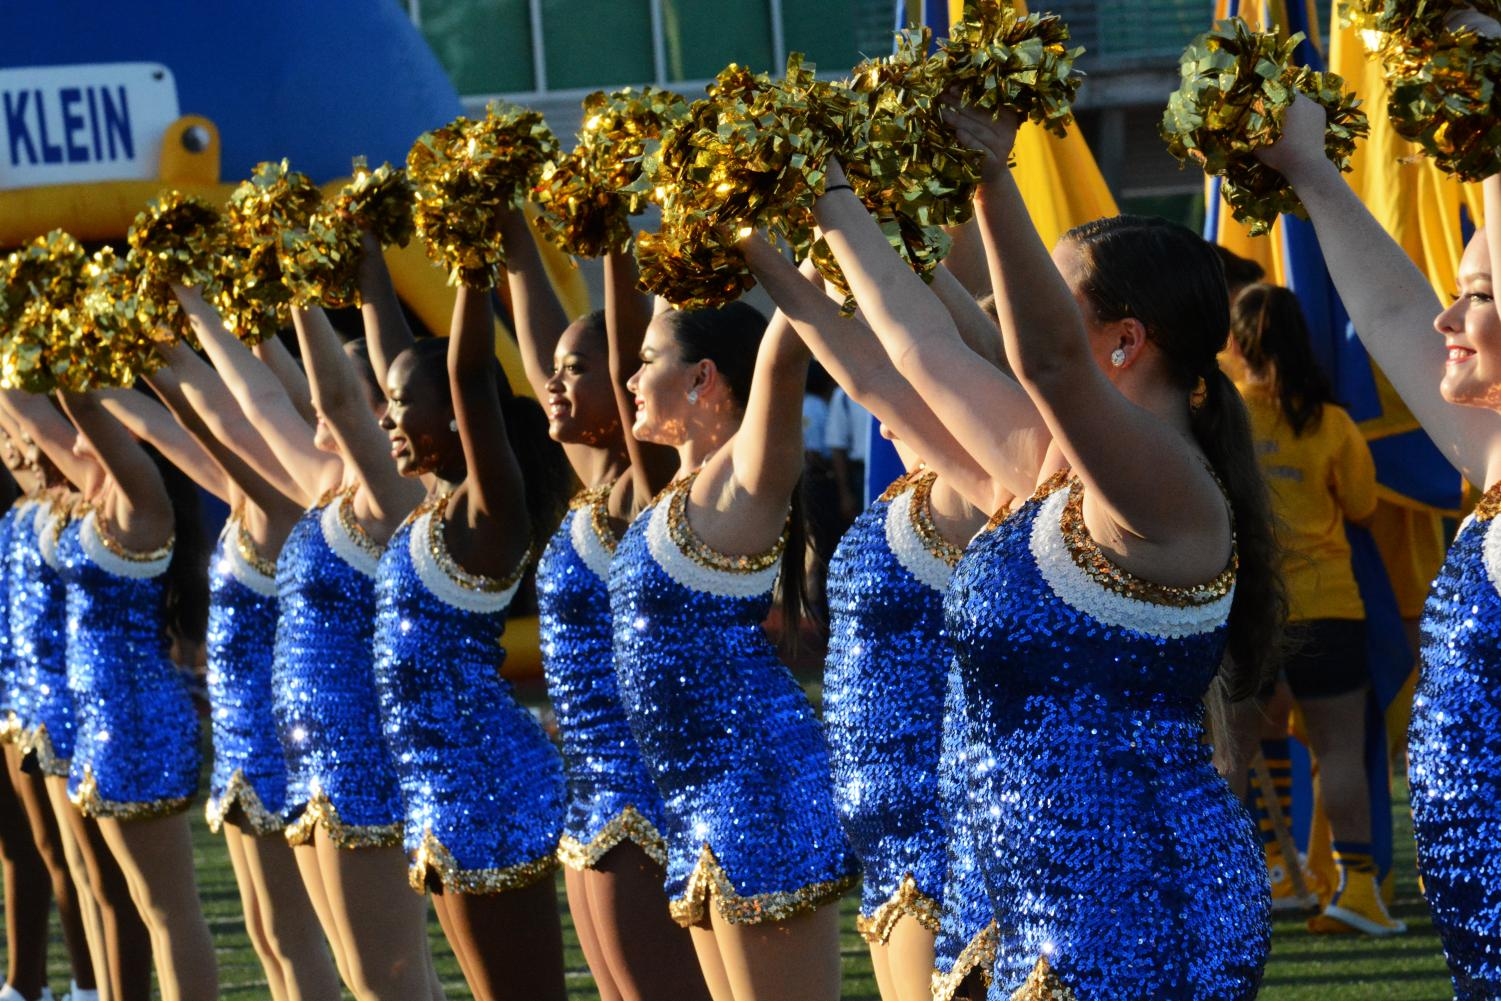 Bearkadettes perform during halftime at a football game.